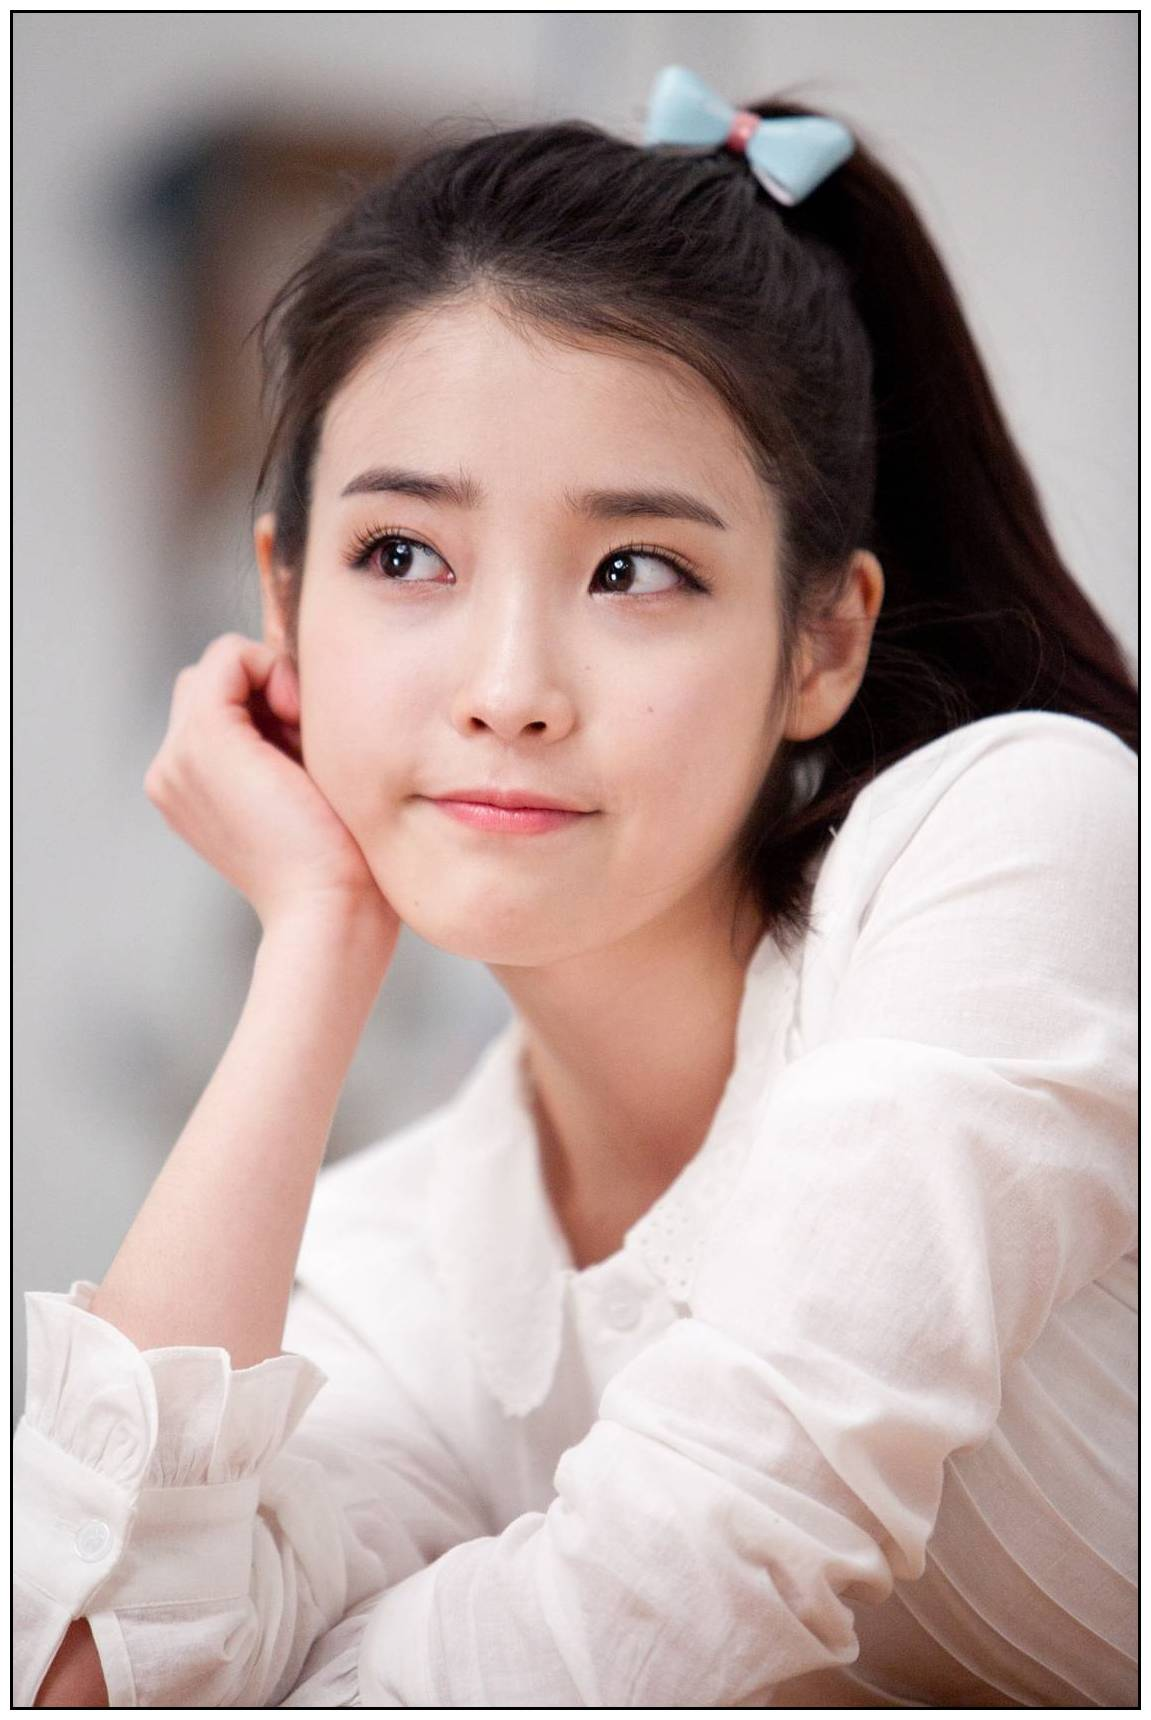 Iu Android Iphone Wallpaper 12146 Asiachan Kpop Image Board